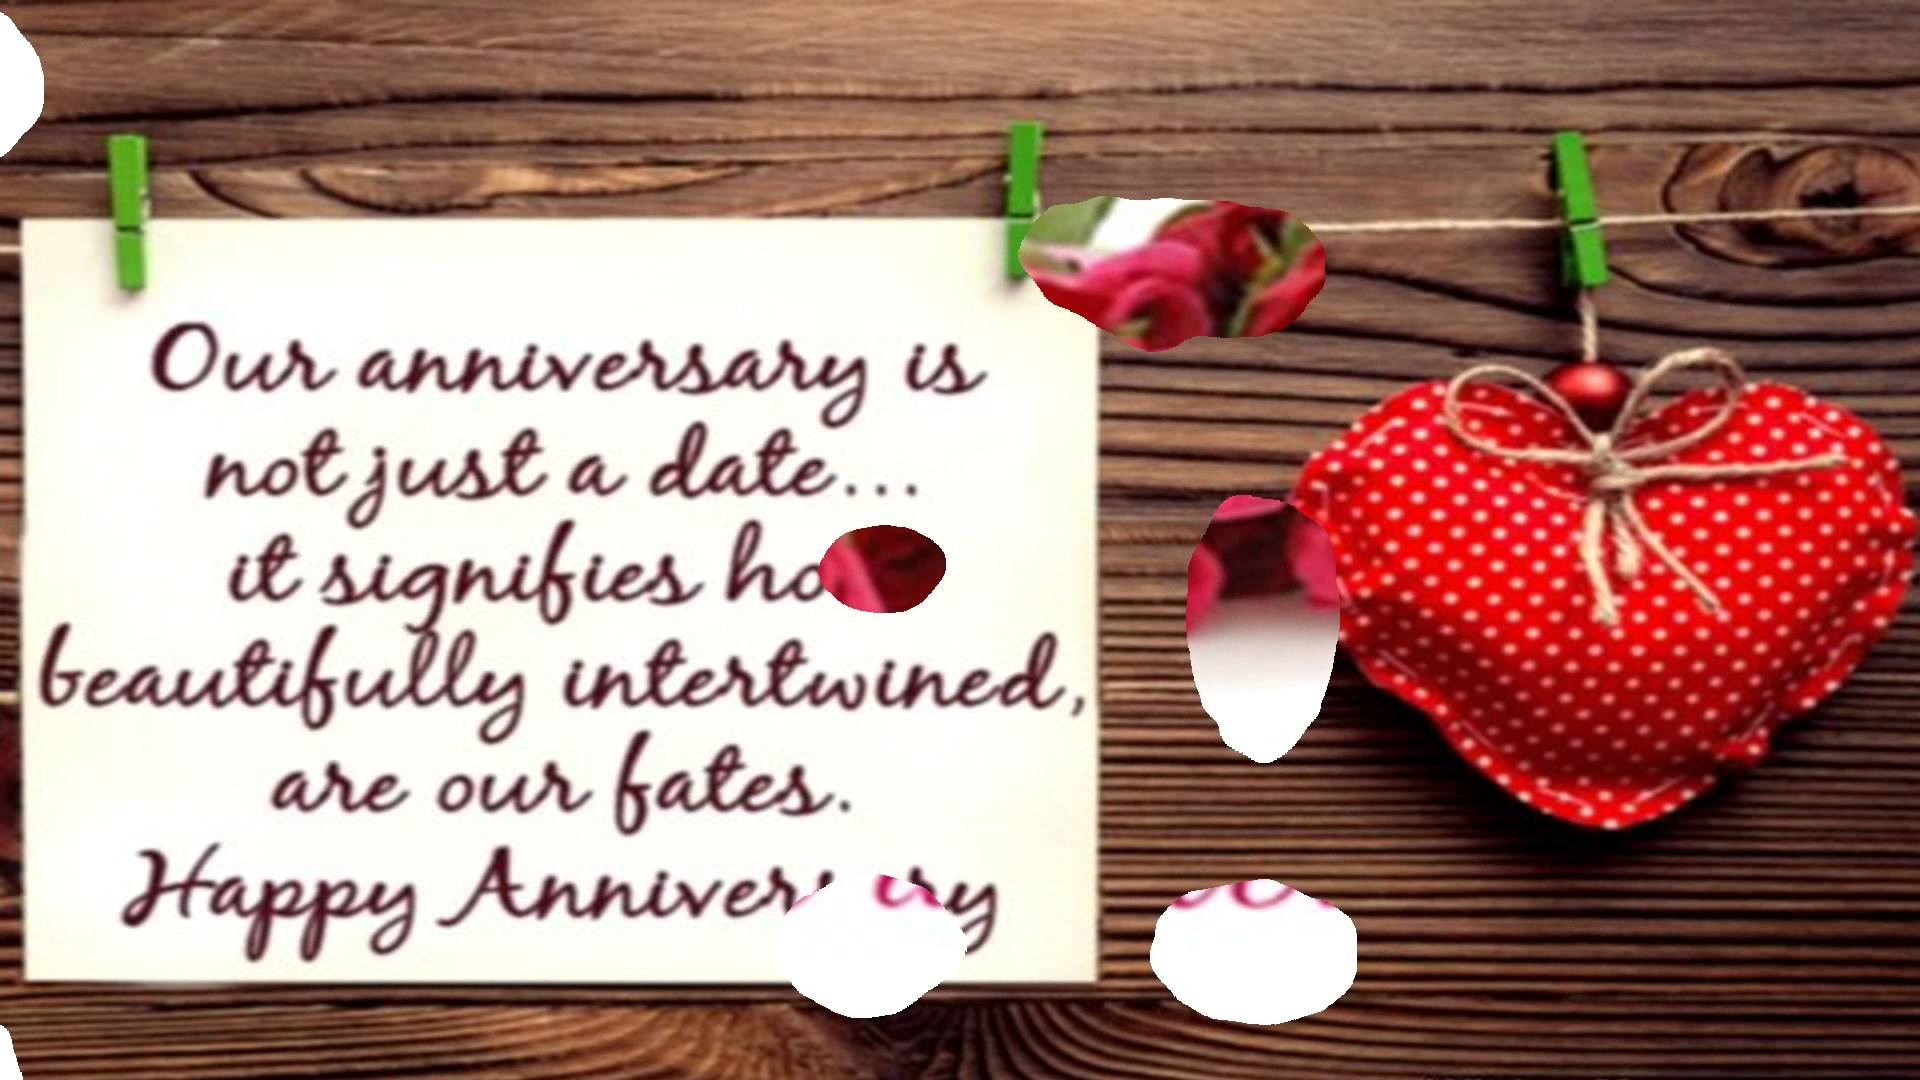 Anniversary Wishes Quotes Anniversary Pictures Images Graphics For Facebook Whatsapp